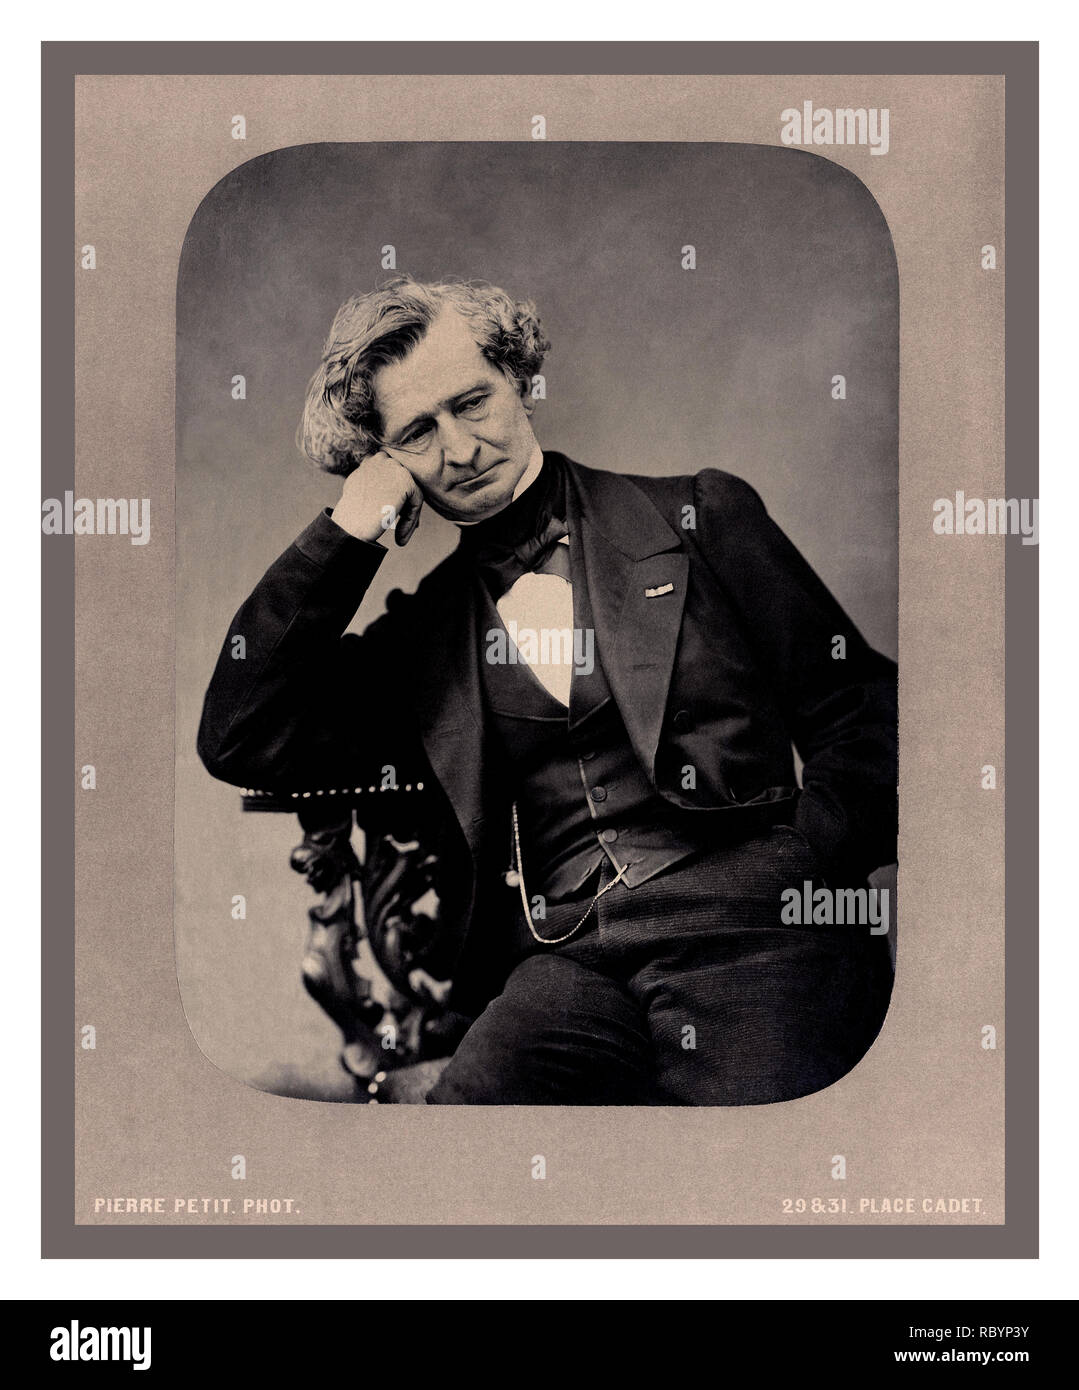 BERLIOZ FRENCH COMPOSER Vintage 1863 studio posed portrait of Louis-Hector Berlioz by Pierre Petit, Place Cadet Paris France   11 December 1803 – 8 March 1869) He was a French Romantic composer. His output includes orchestral works such as the Symphonie fantastique and Harold in Italy, choral pieces including the Requiem and L'enfance du Christ, his three operas Benvenuto Cellini, Les Troyens and Béatrice et Bénédict, and works of hybrid genres such as the 'dramatic symphony' Roméo et Juliette and the 'dramatic legend' La damnation de Faust. - Stock Image